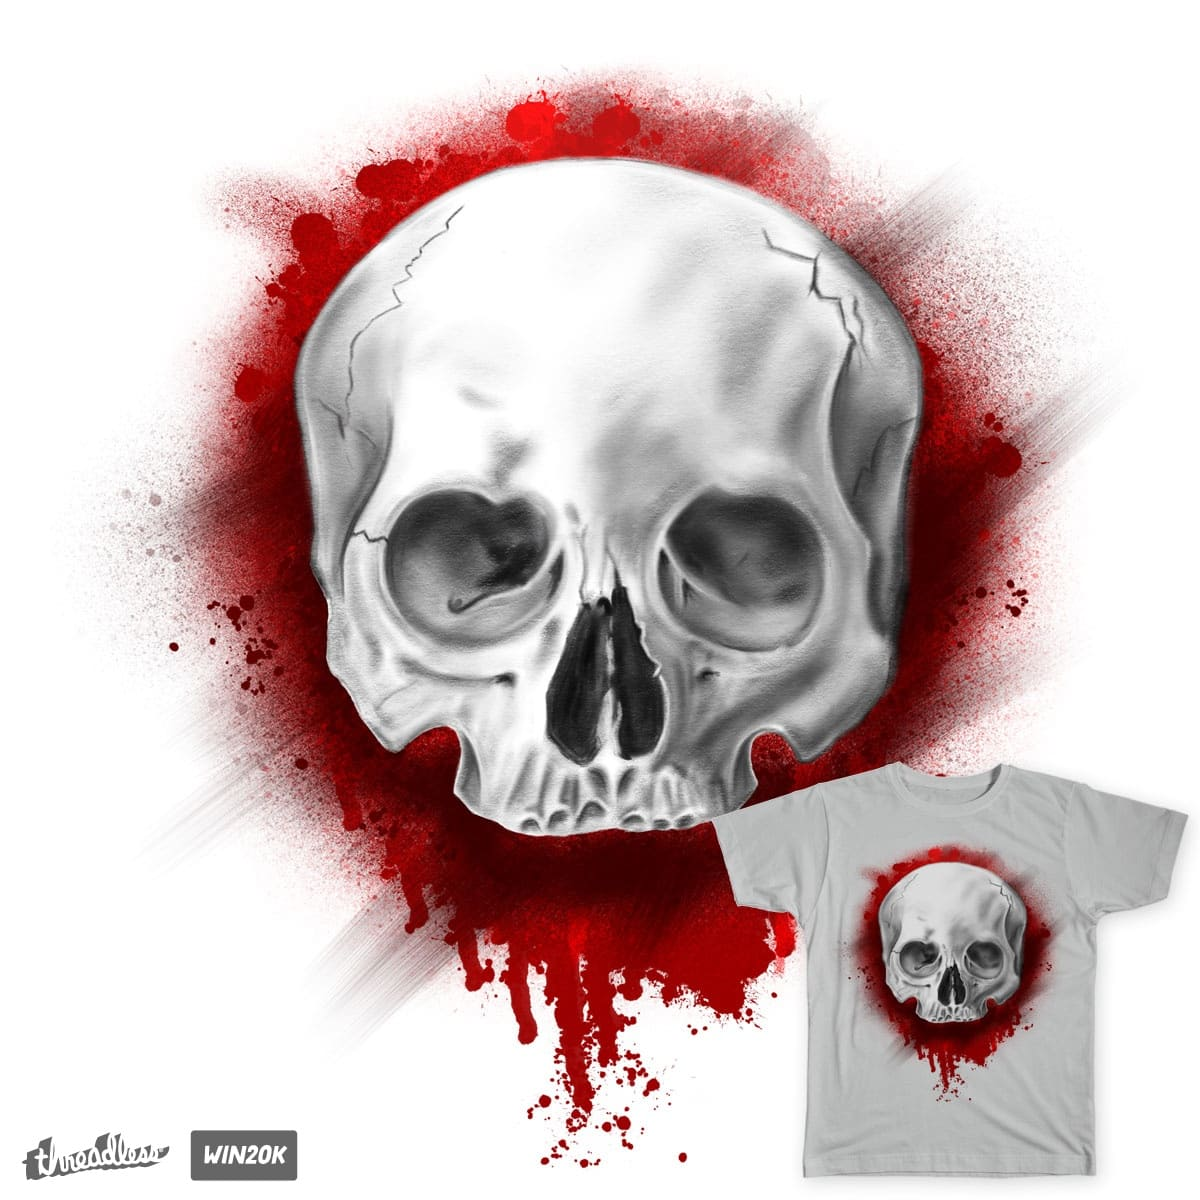 skull&blood by isemonenko on Threadless